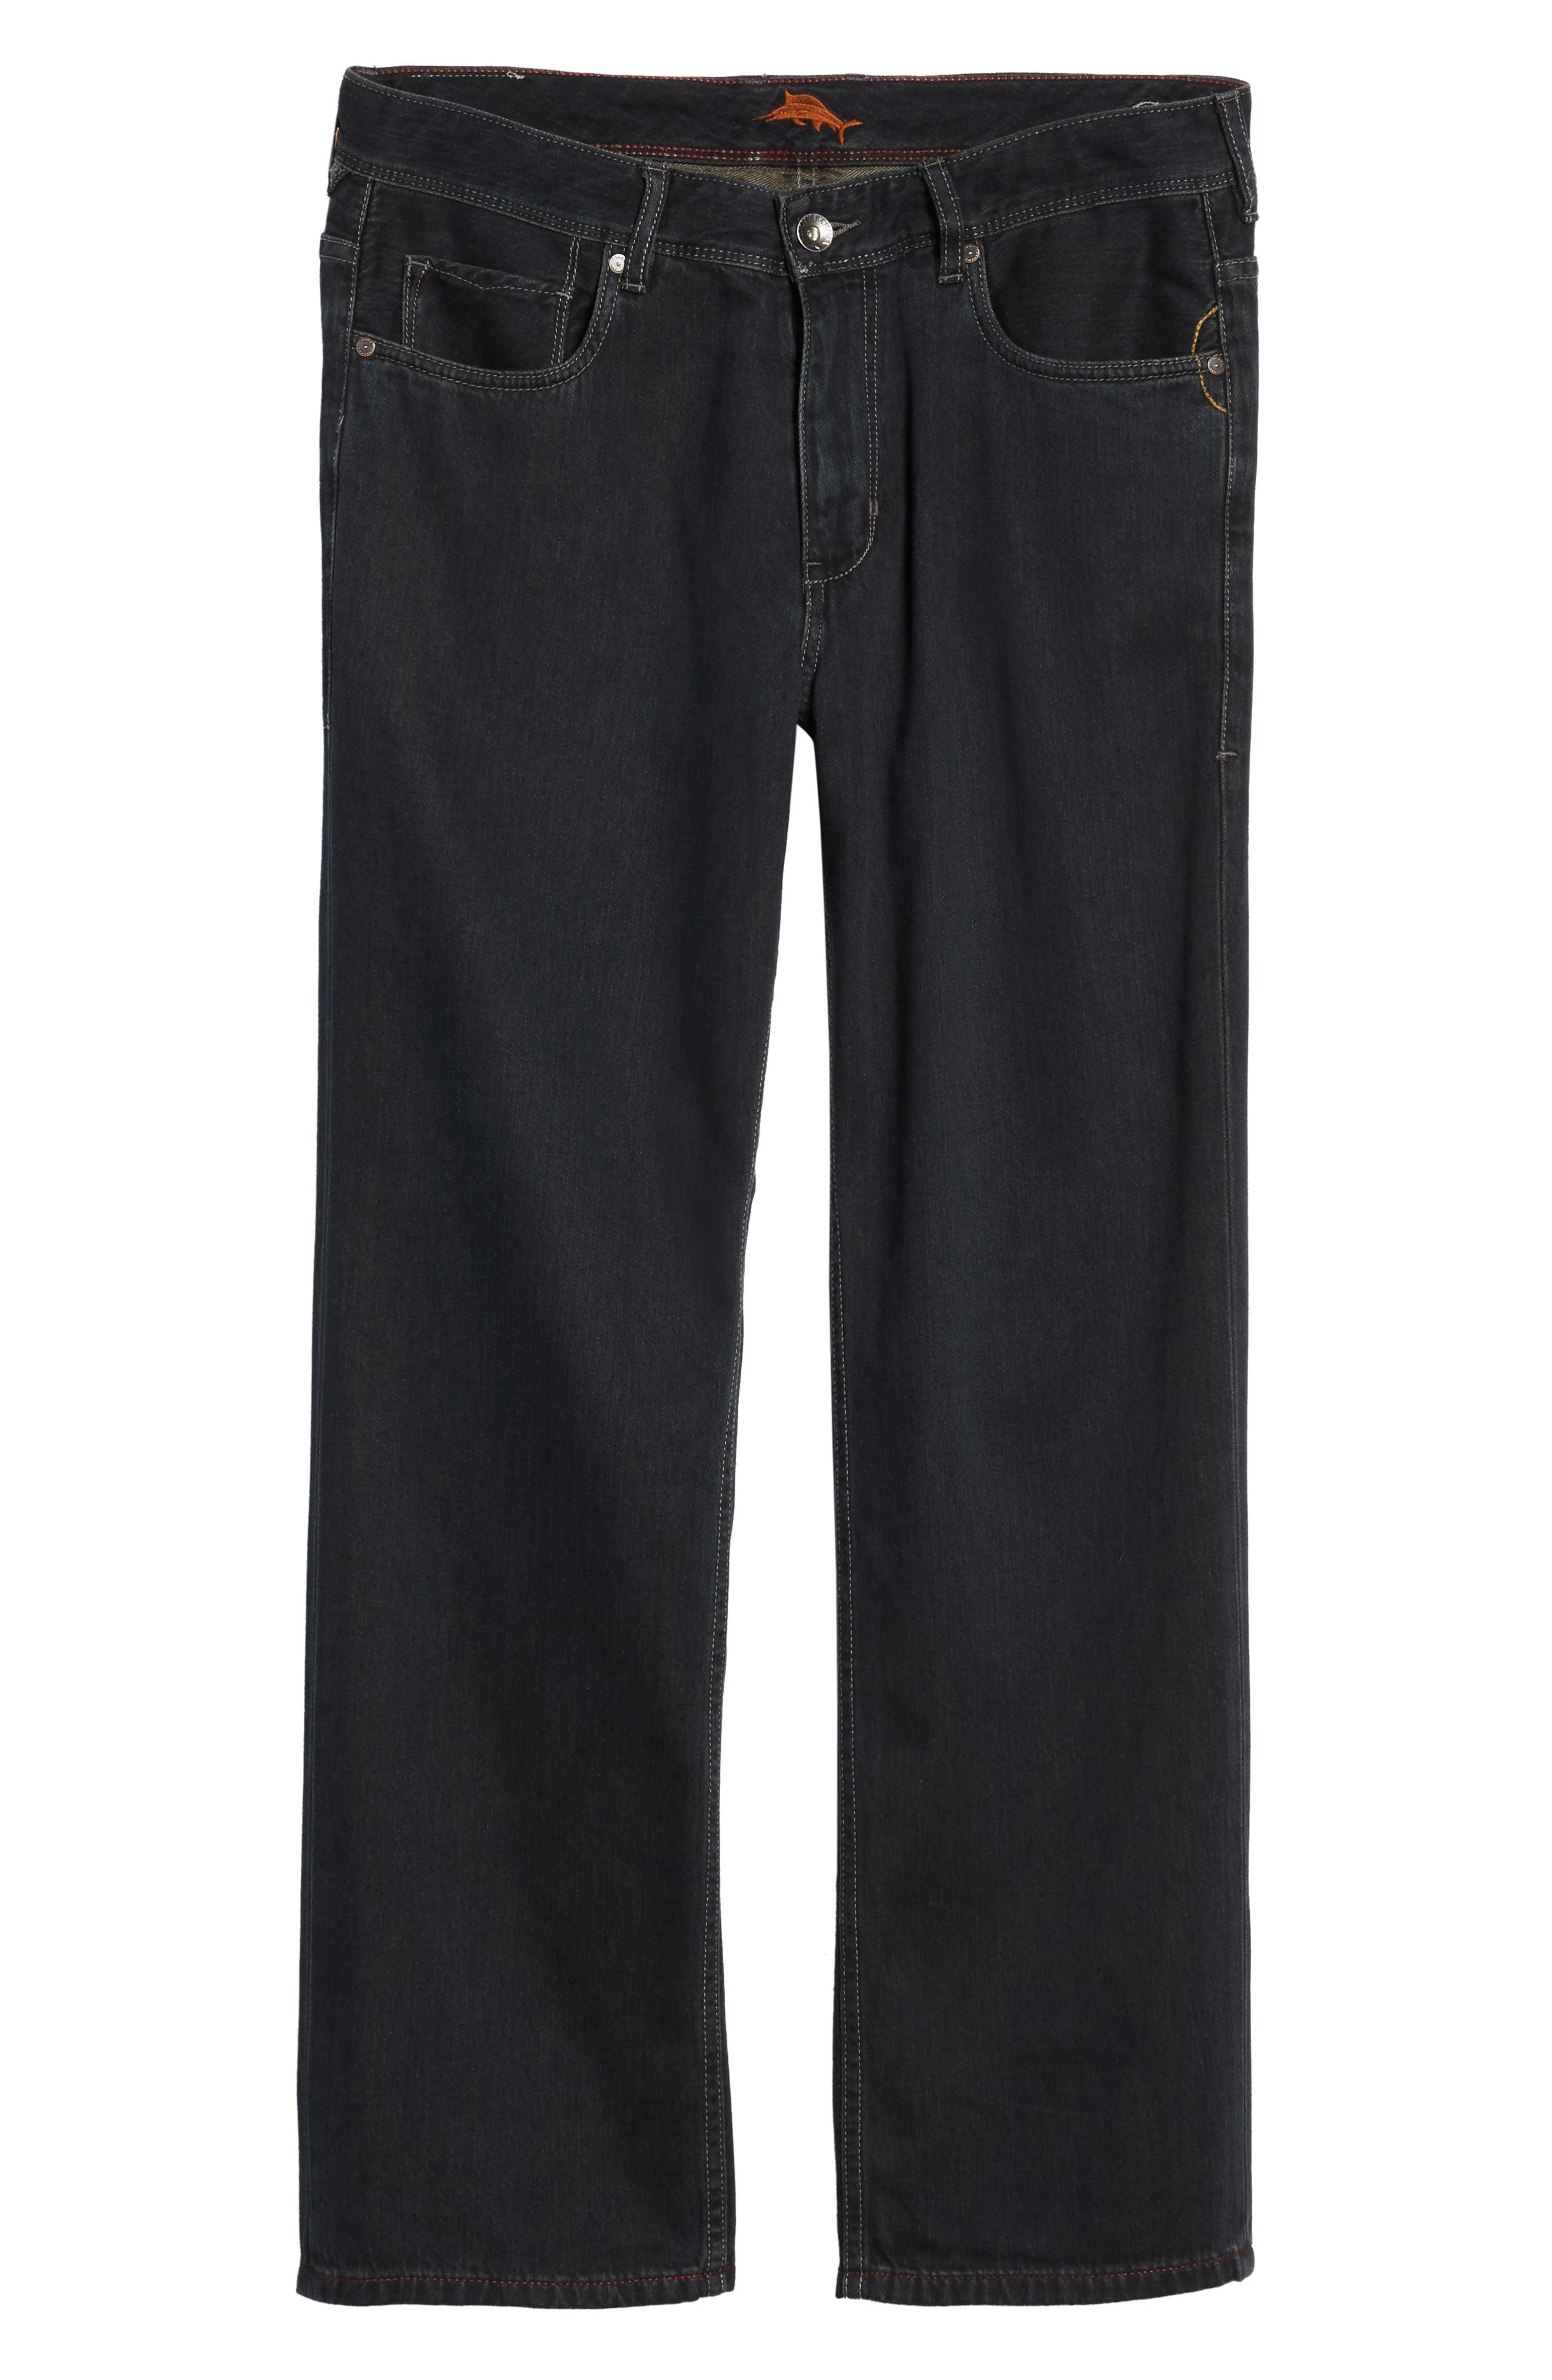 Cayman Relaxed Fit Straight Leg Jeans,                         Main,                         color, BLACK OVERDYE